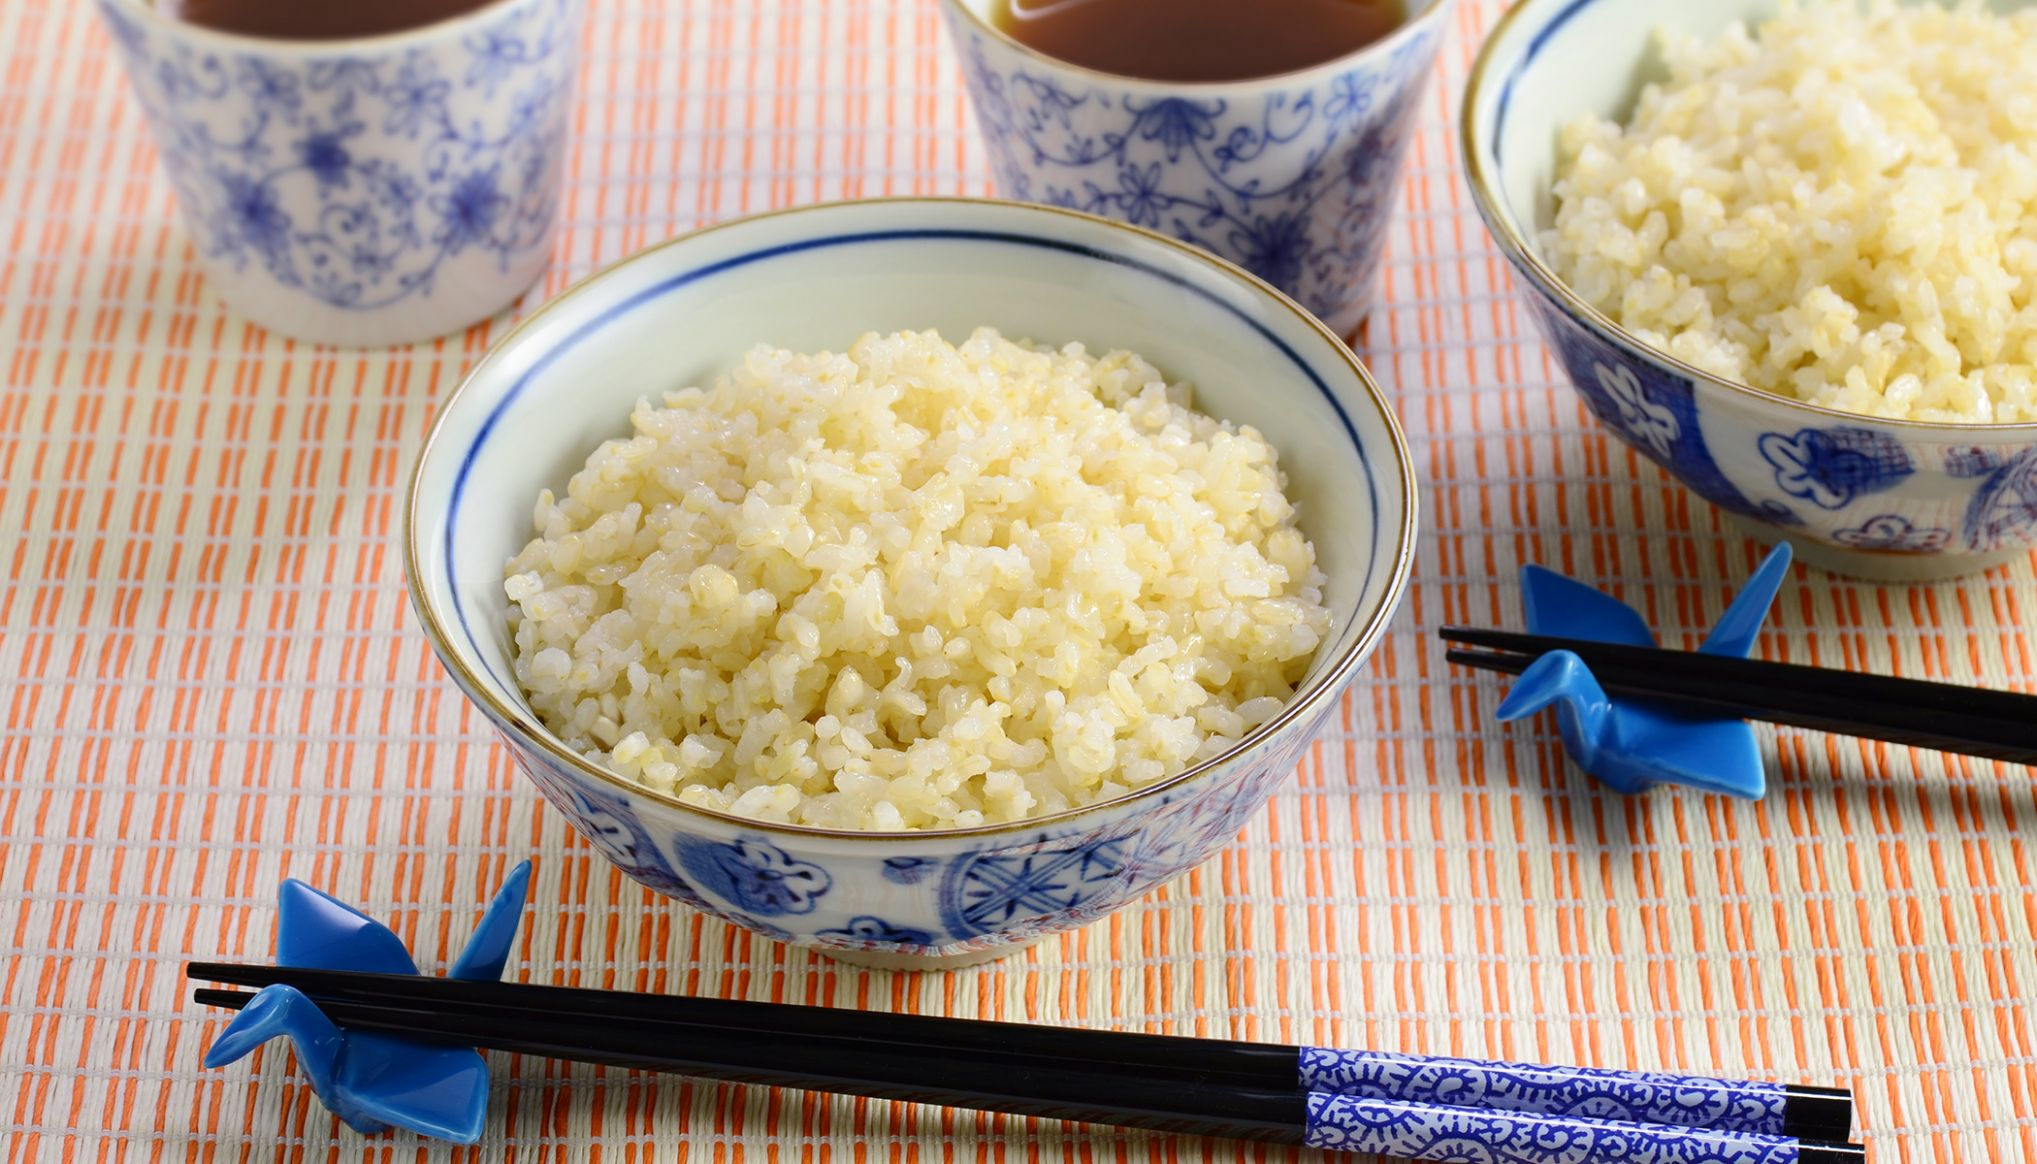 Brown Rice | Zojirushi.com